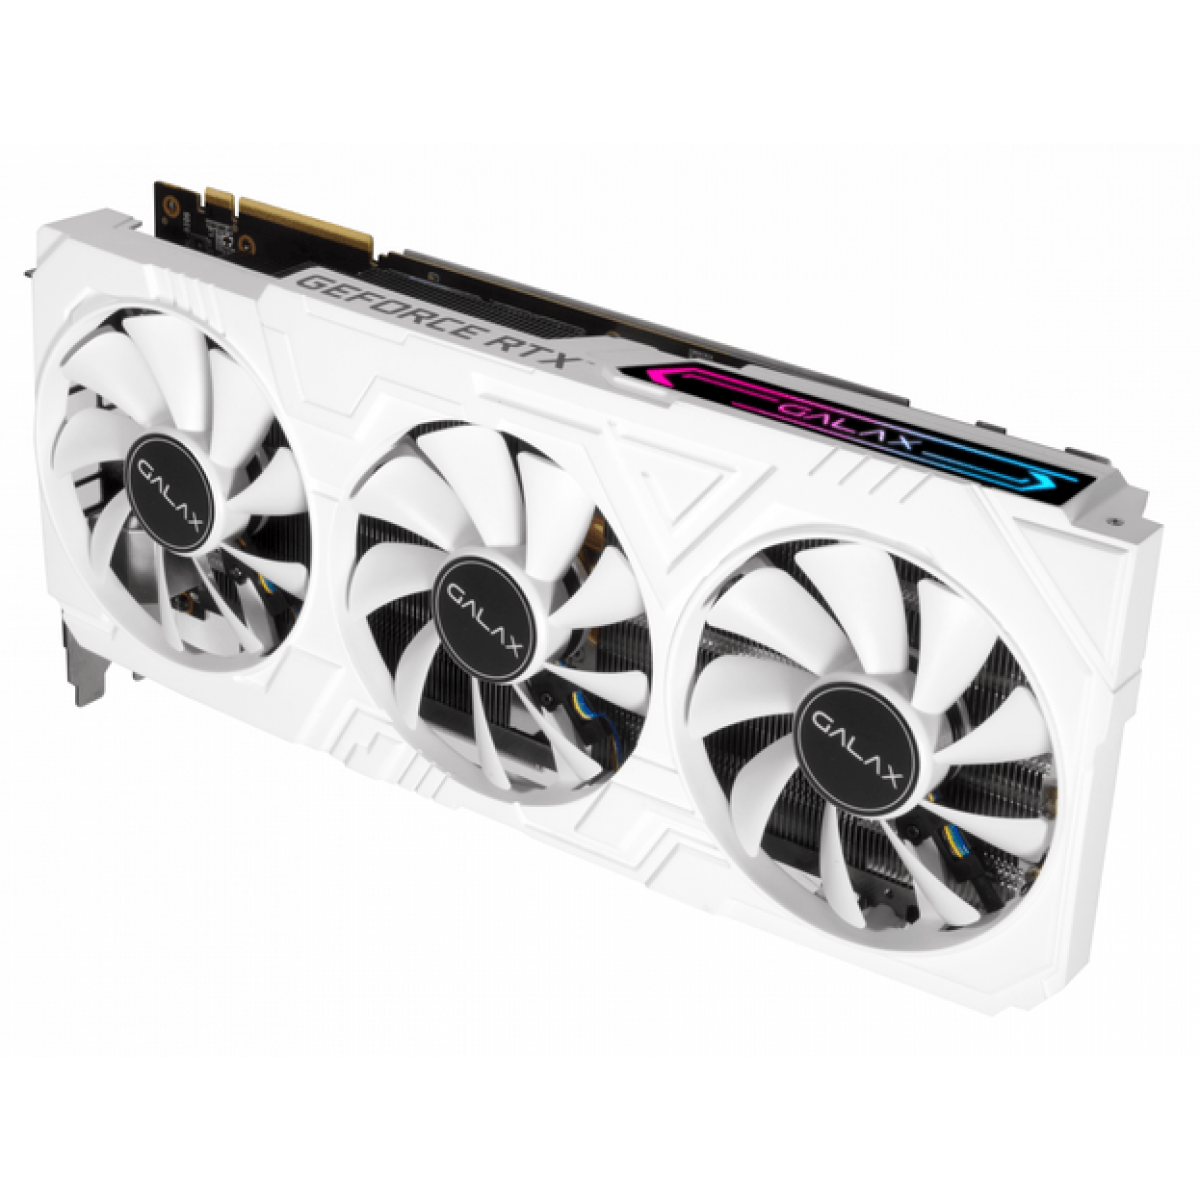 Placa de Vídeo Galax Geforce RTX 2080 Ex Gamer (1-Click OC - V2), 8GB GDDR6, 28NSL6MDW7G2